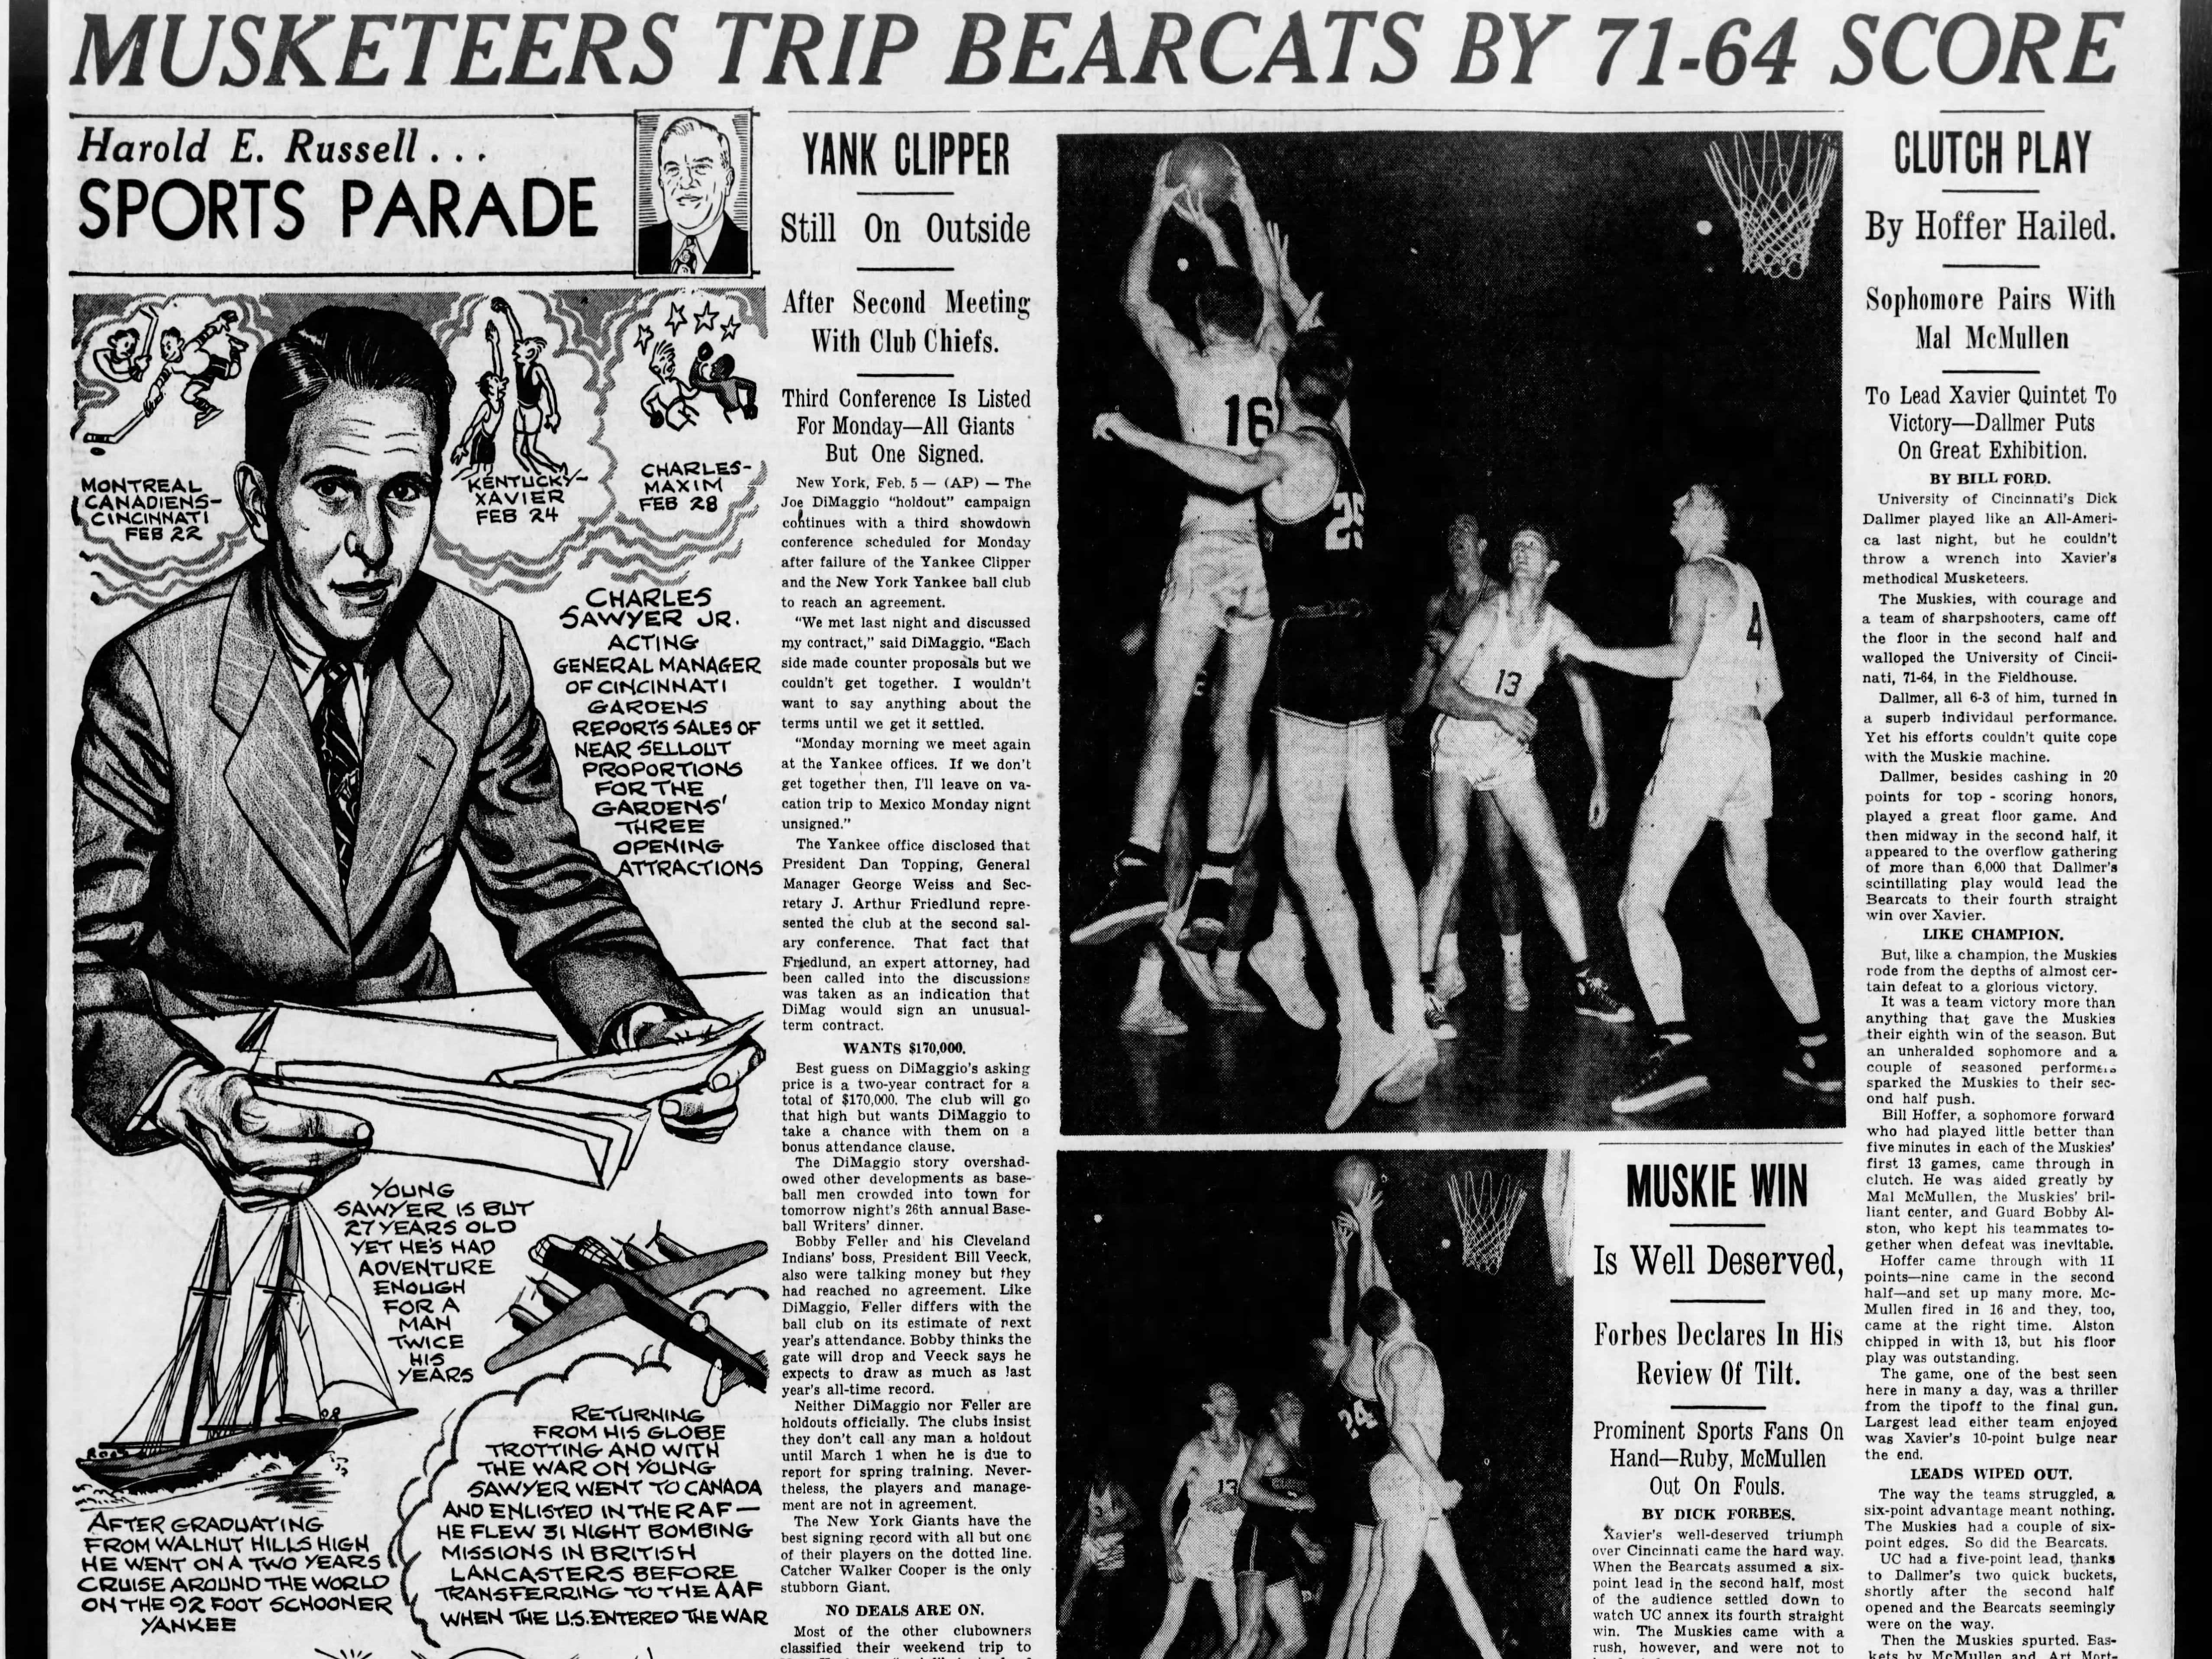 Xavier and UC met twice in the 1948-49 season. The Musketeers won the first meeting, 71-64.